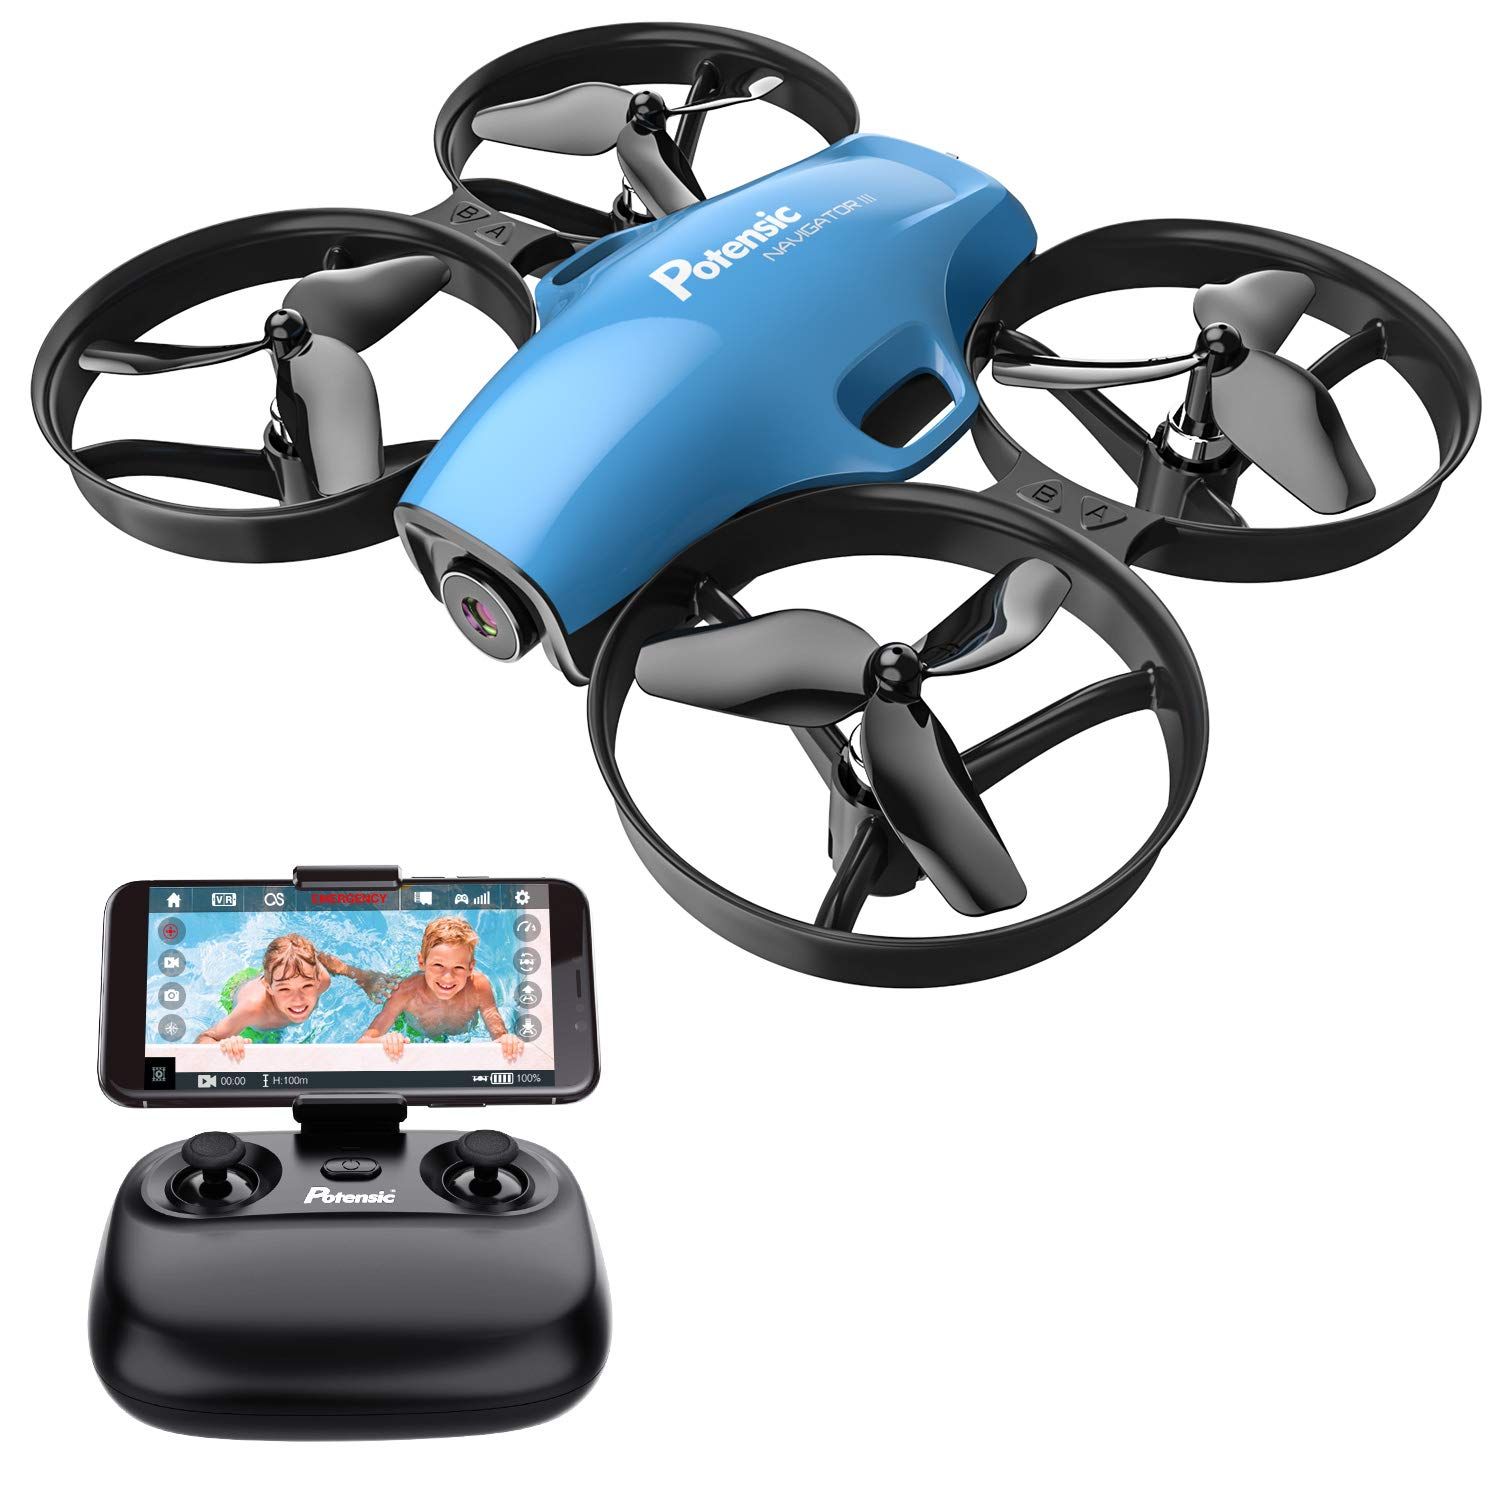 Potensic A30W WiFi FPV Drone 720P HD Camera, RC Quadcopter for Beginners with Altitude Hold, Headless Mode, One Button Take Off/Landing, Emergency Stop-Blue by Potensic